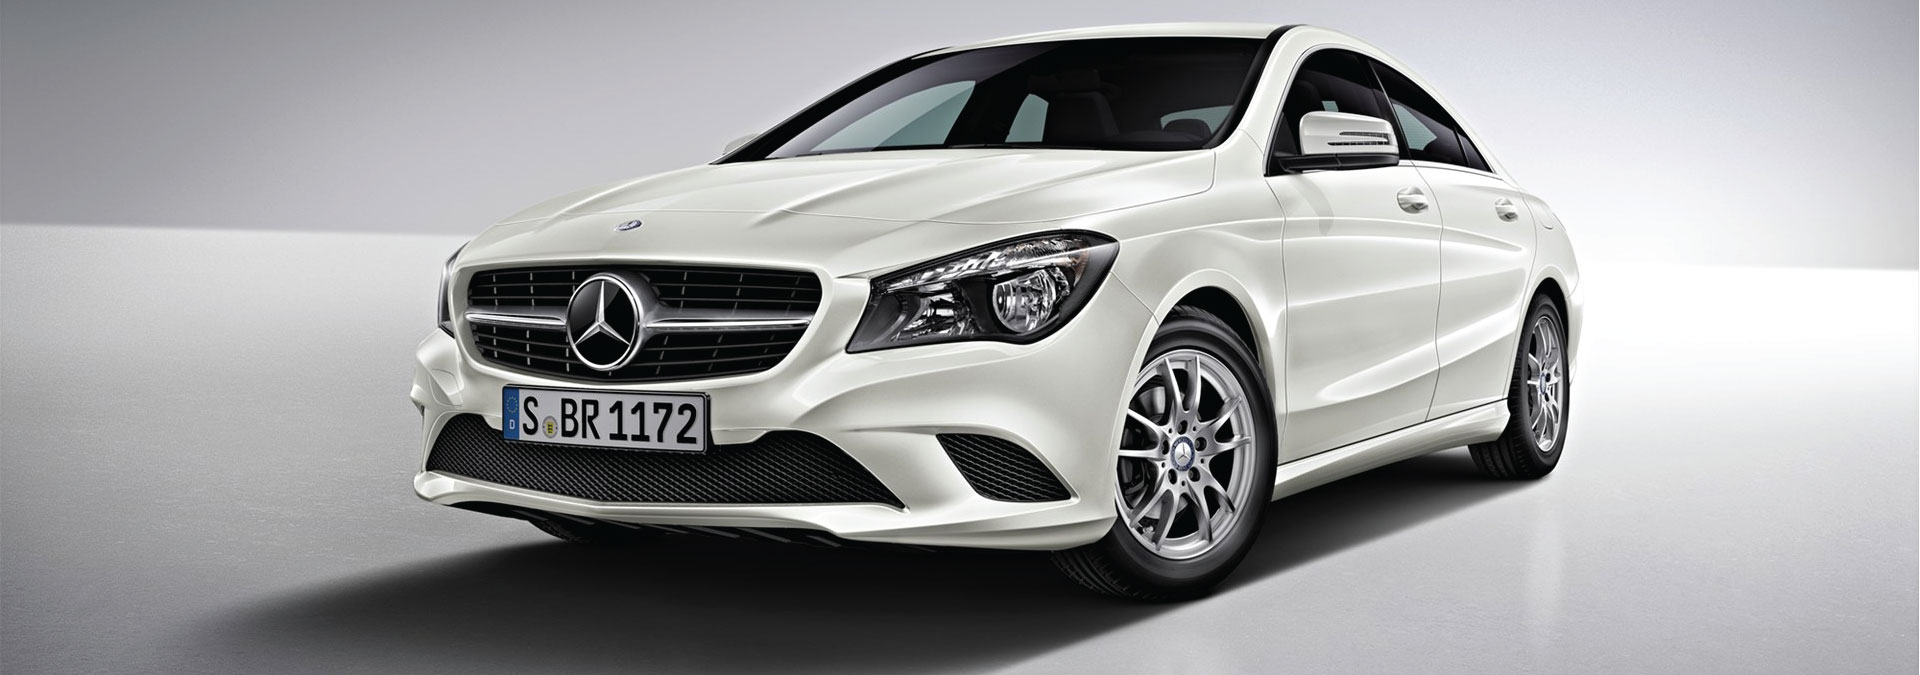 mercedes programming and ECU tuning on all types and models